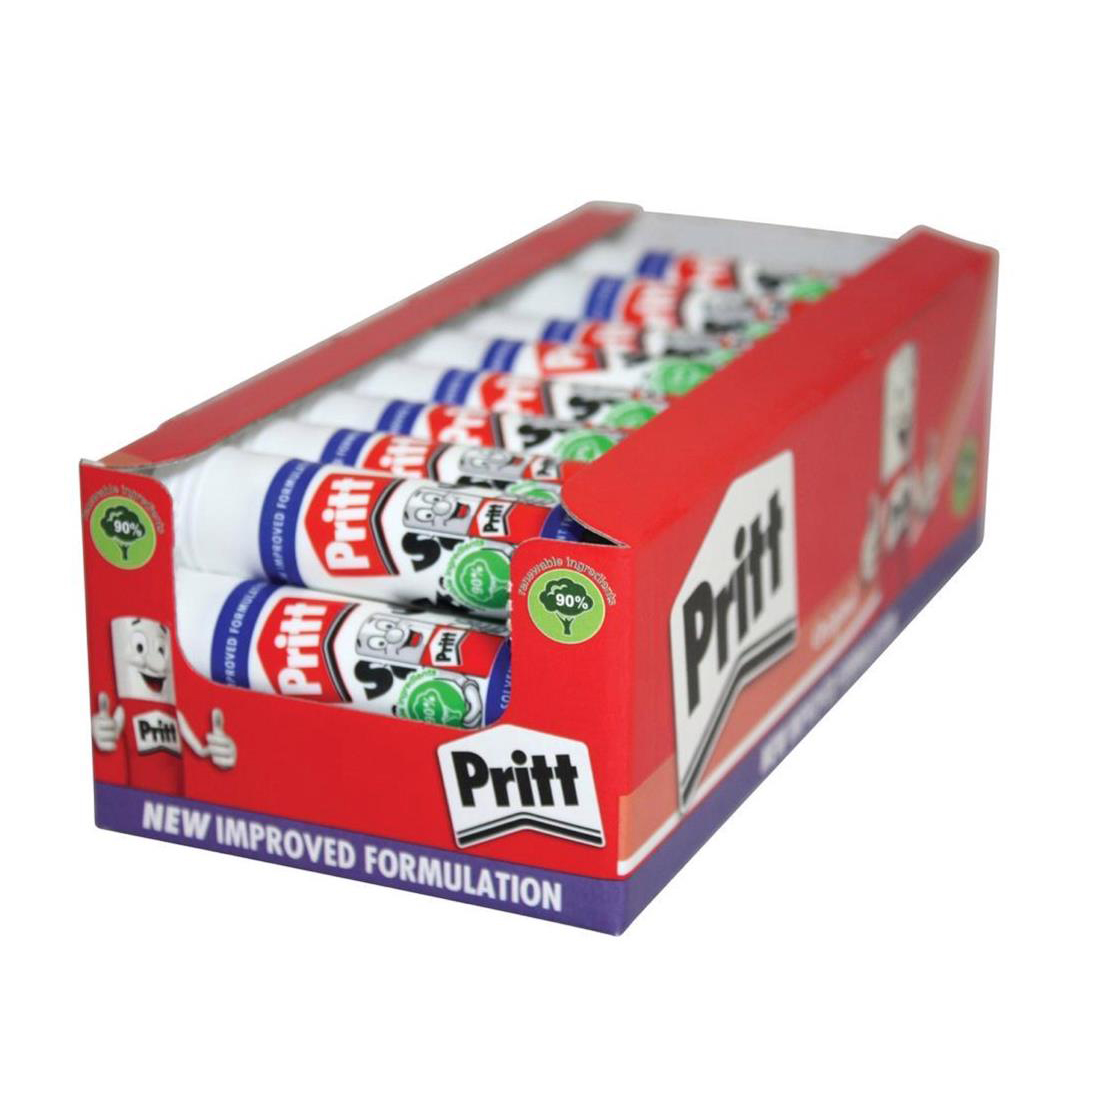 Pritt Stick Glue Solid Washable Non-toxic Standard 11gm Ref 1564149 [Pack 100] [Bulk Pack] Jan-Dec 2019